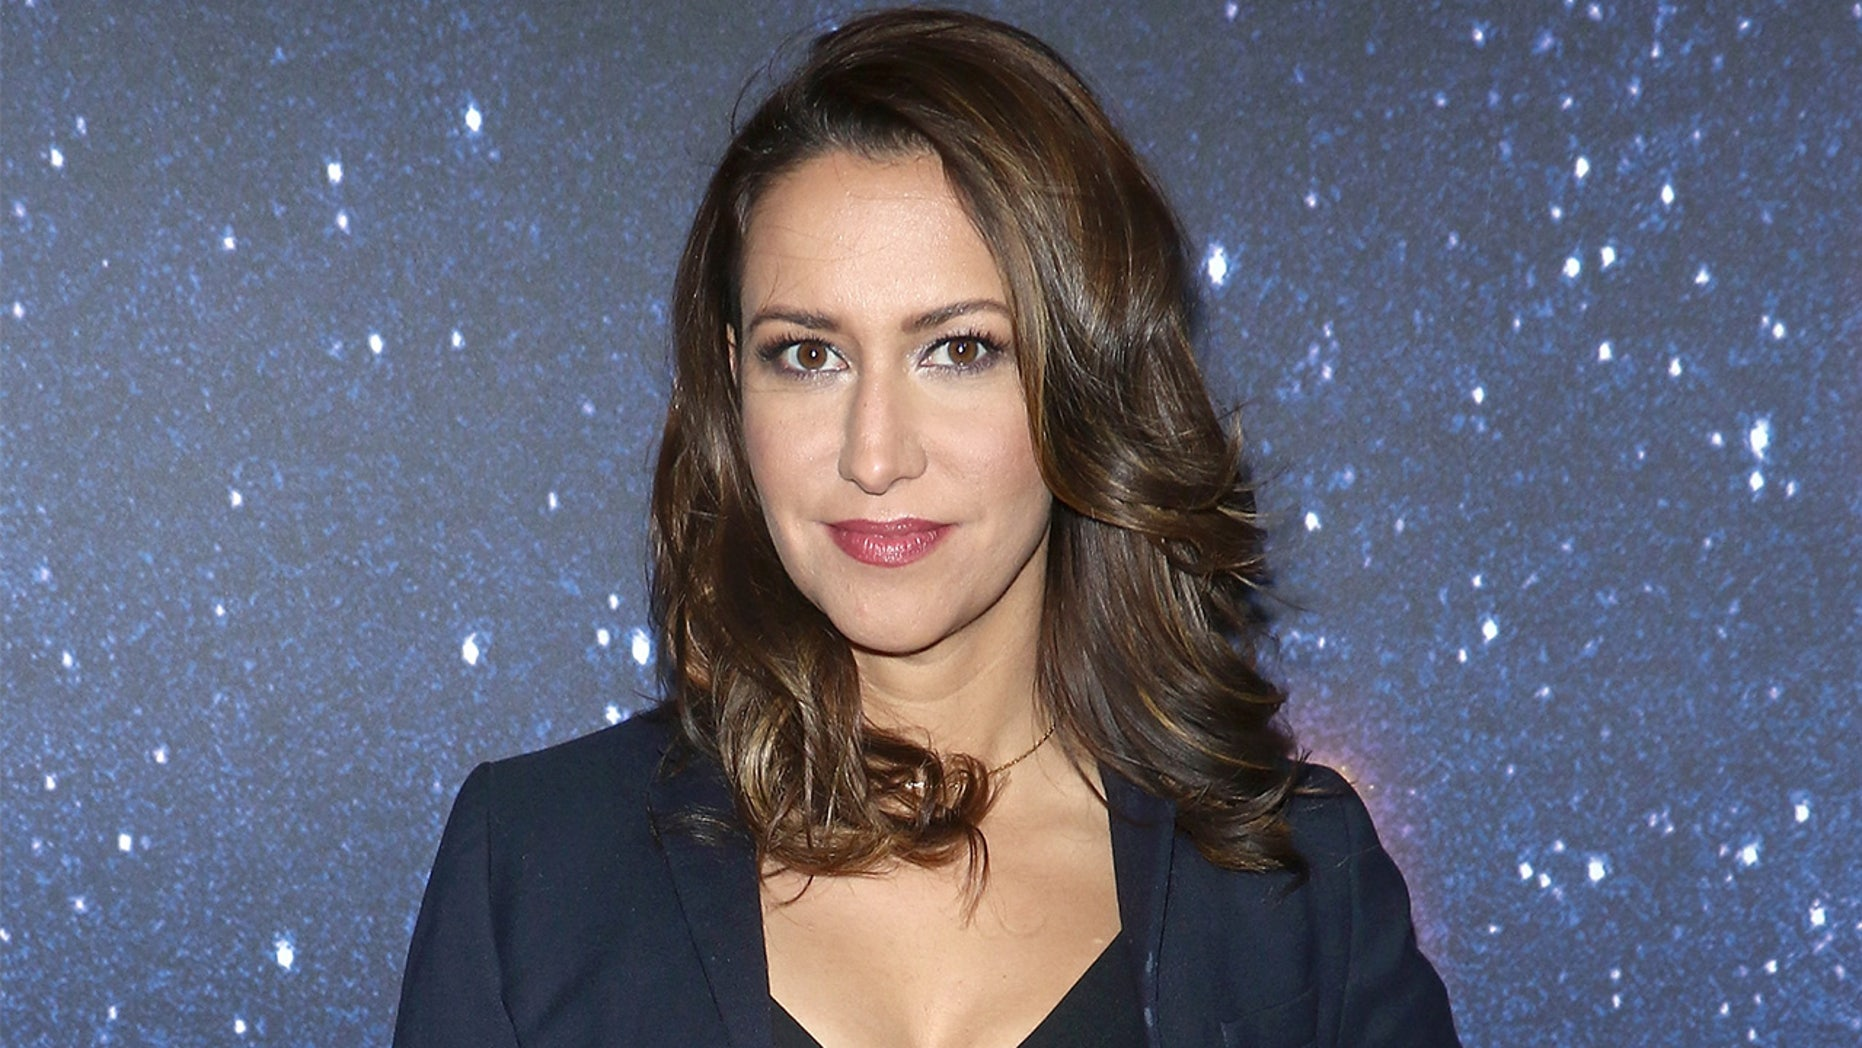 Comedian Rachel Feinstein talks to Fox News about marrying an FDNY captain and why she chose pal Amy Schumer to be her maid of honor.